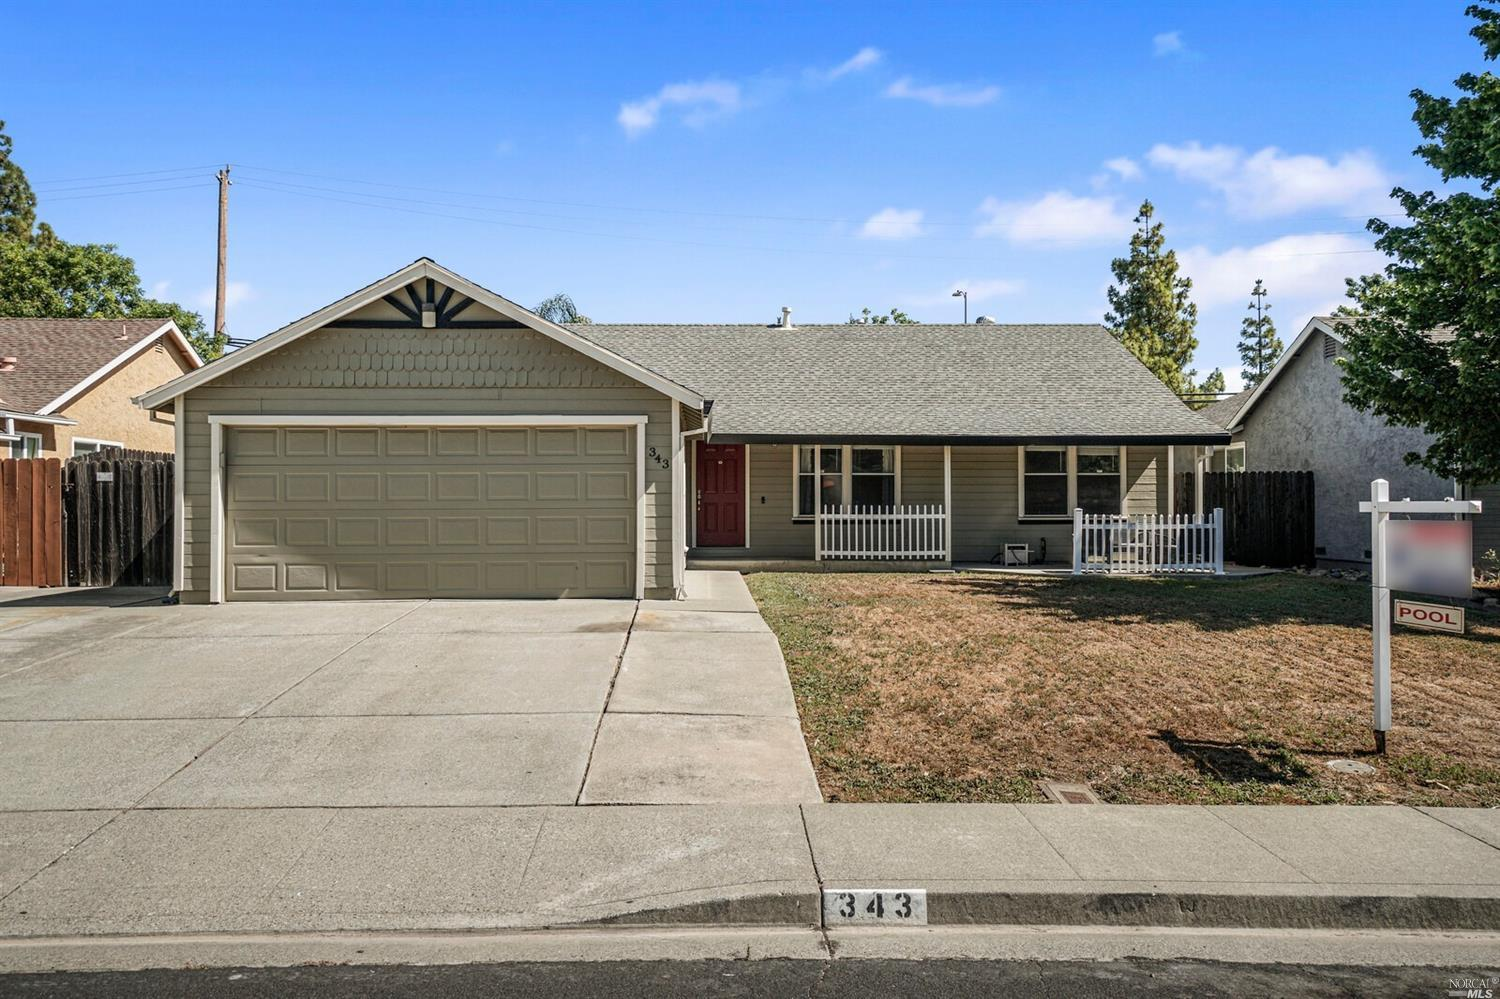 Honey, Stop the car!  3/2 with Master retreat, Prepare to be amazed by the stunning custom Kitchen with quartz countertops! Beautiful island that opens into the great room.  Laminate flooring throughout the home. Master bedroom has a retreat area with walk in closet.  Extra parking on the side and more room in the front for future RV space. Did I mention the pool? In ground pool and patio in the back make this a perfect choice for your family this summer. Close to schools, shopping, and parks. Hurry this one will NOT last long.